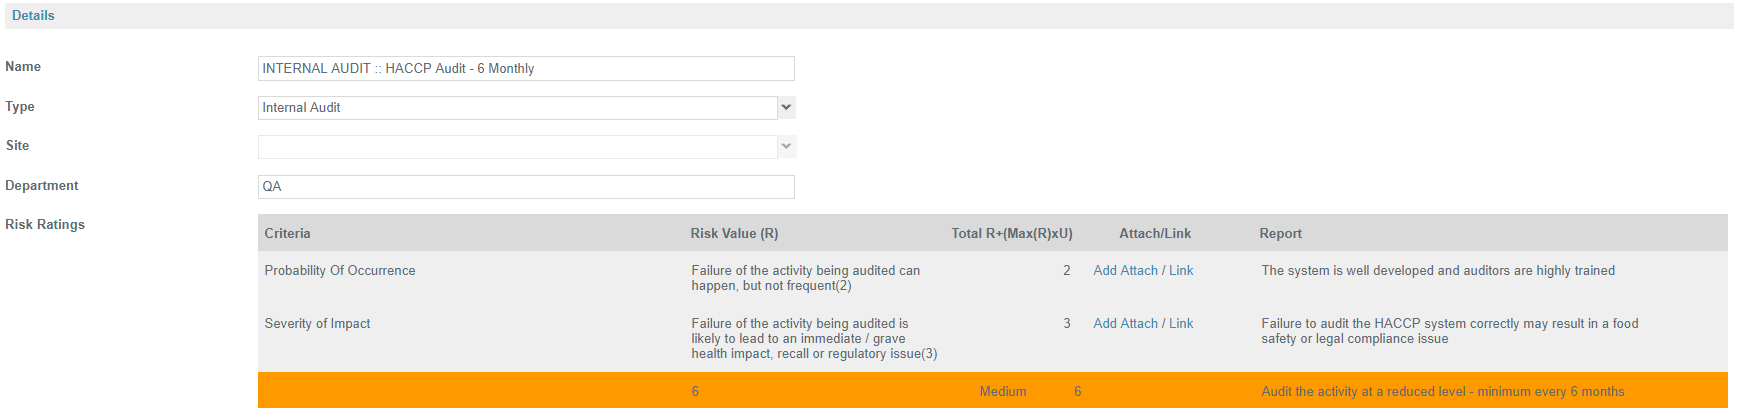 Auditing Activity - RAM Risk Assessment Model Tool - Safefood 360°